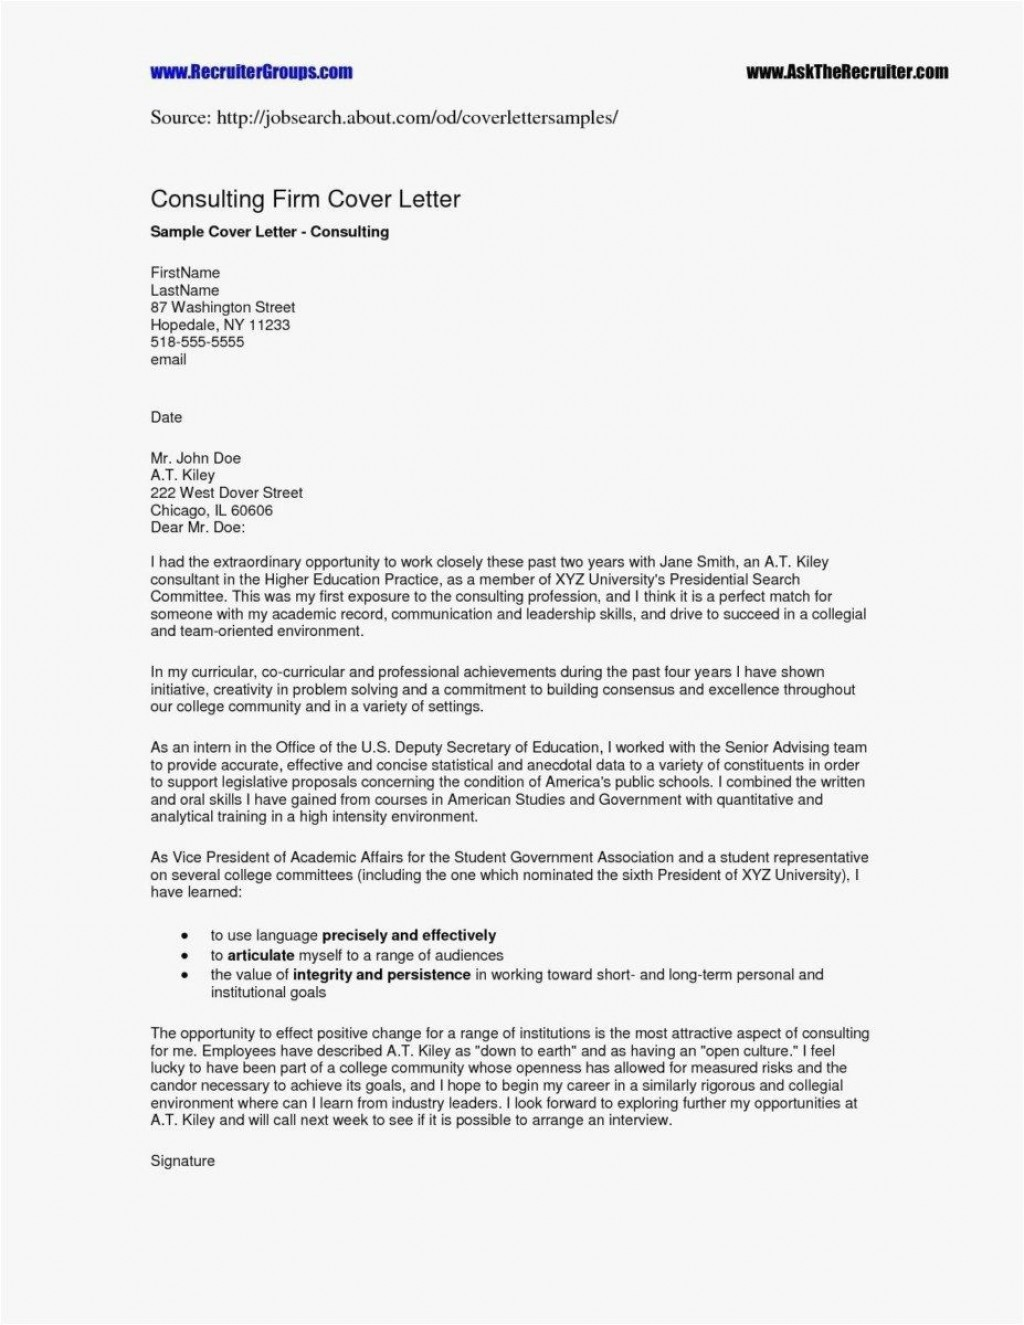 000 Excellent Resume Cover Letter Template Free High Resolution  Simple Online MicrosoftLarge